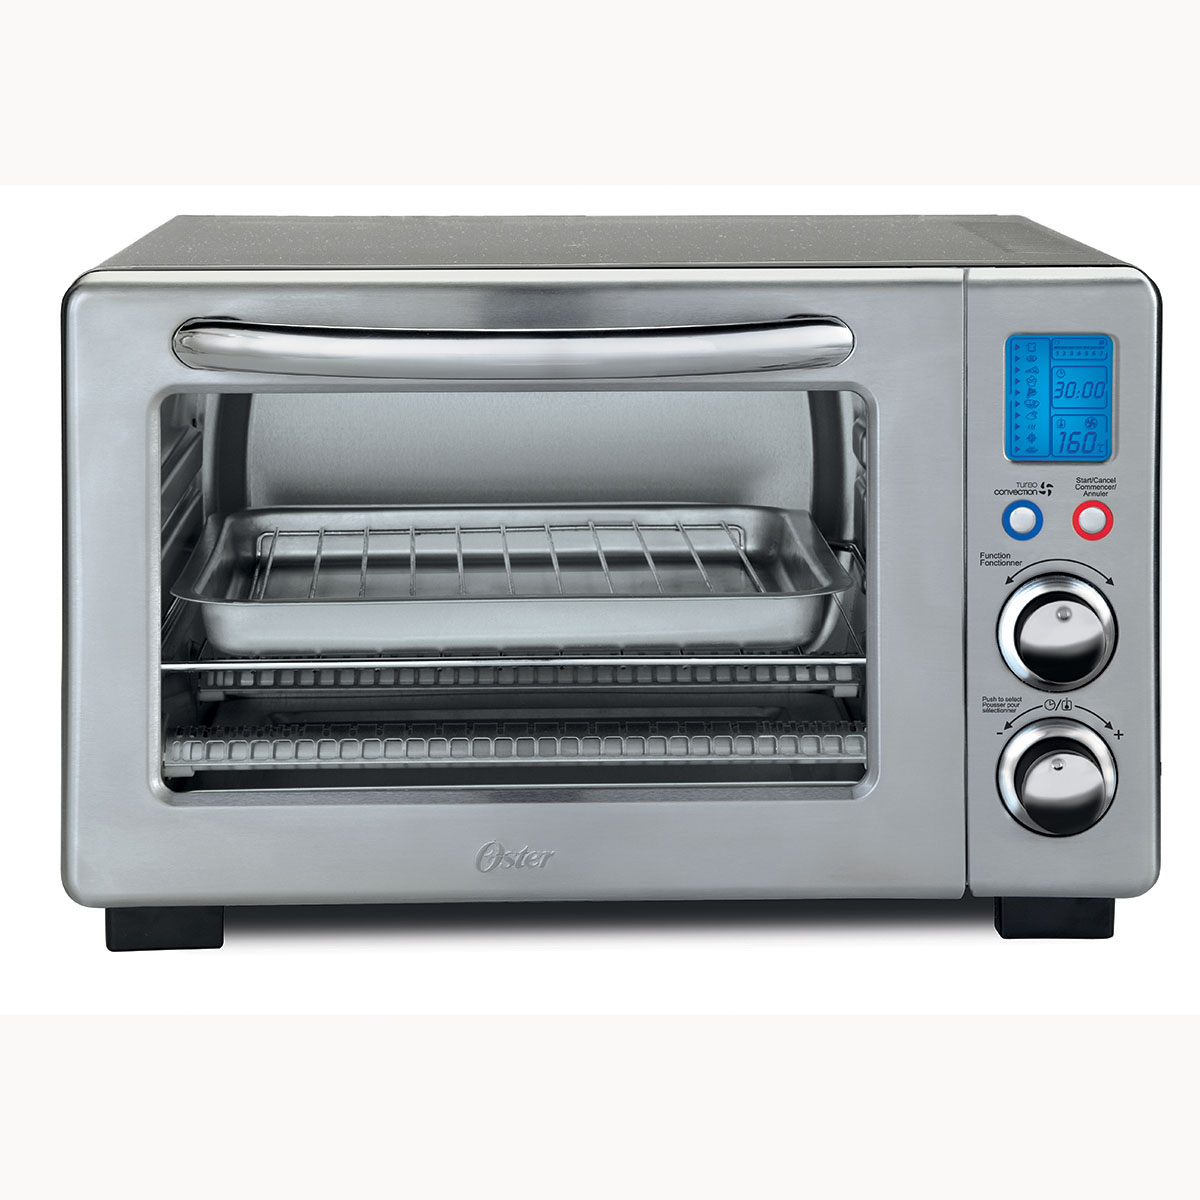 Countertop Oven Canada : Oster? 6-Slice Digital Countertop Oven with Convection, Stainless ...